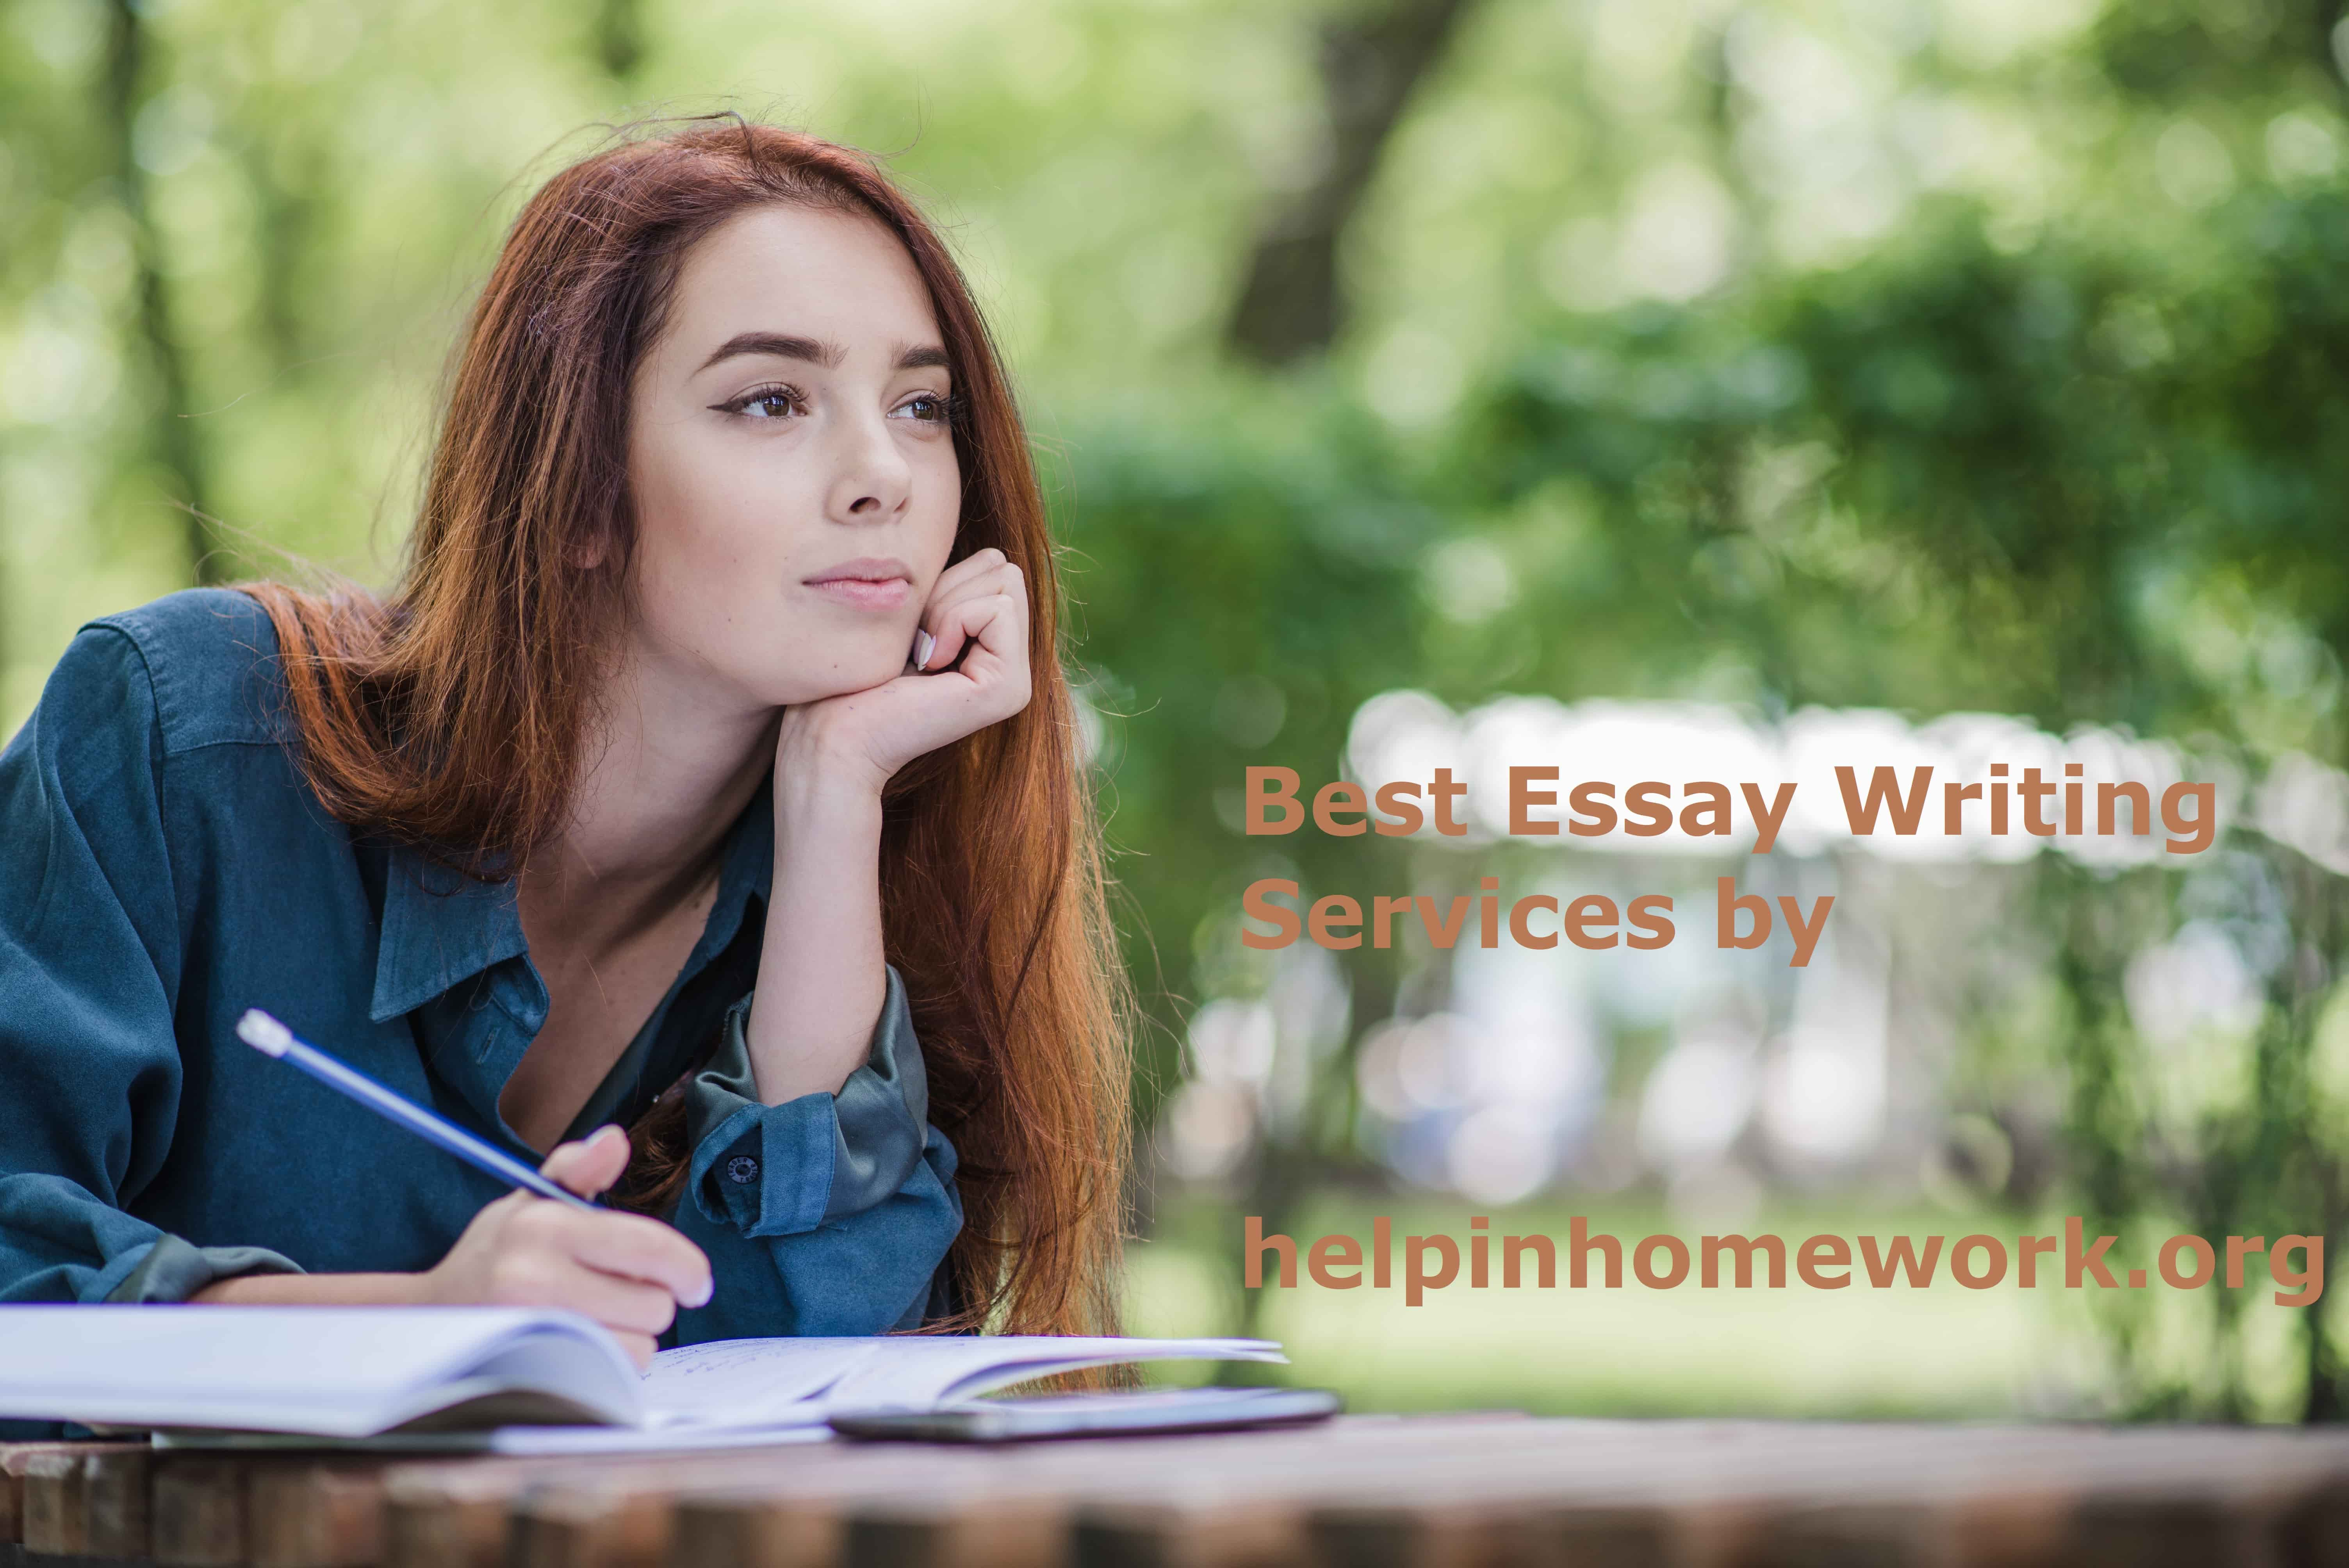 5 key benefits of choosing a trusted writer to solve essay assignments